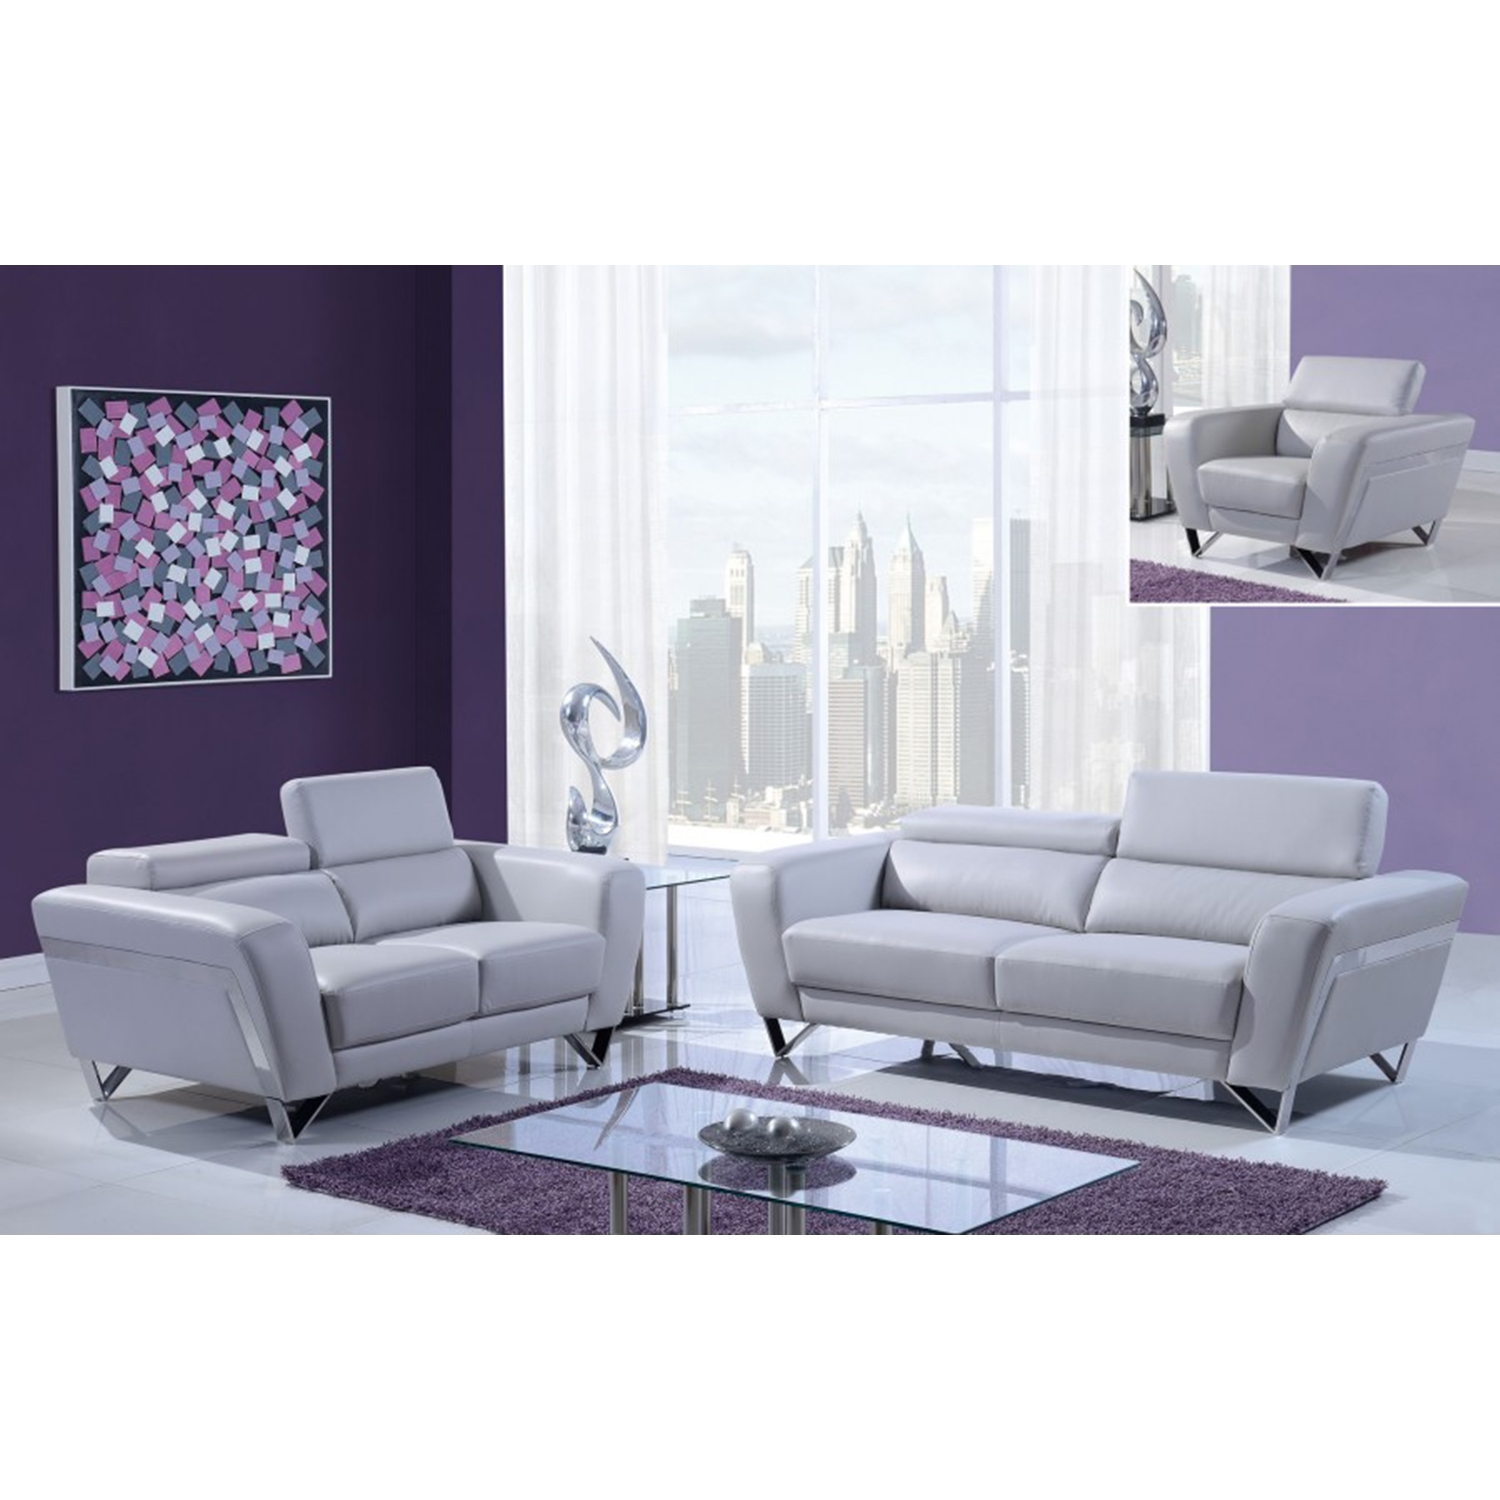 Braden Sofa Set - Light Gray